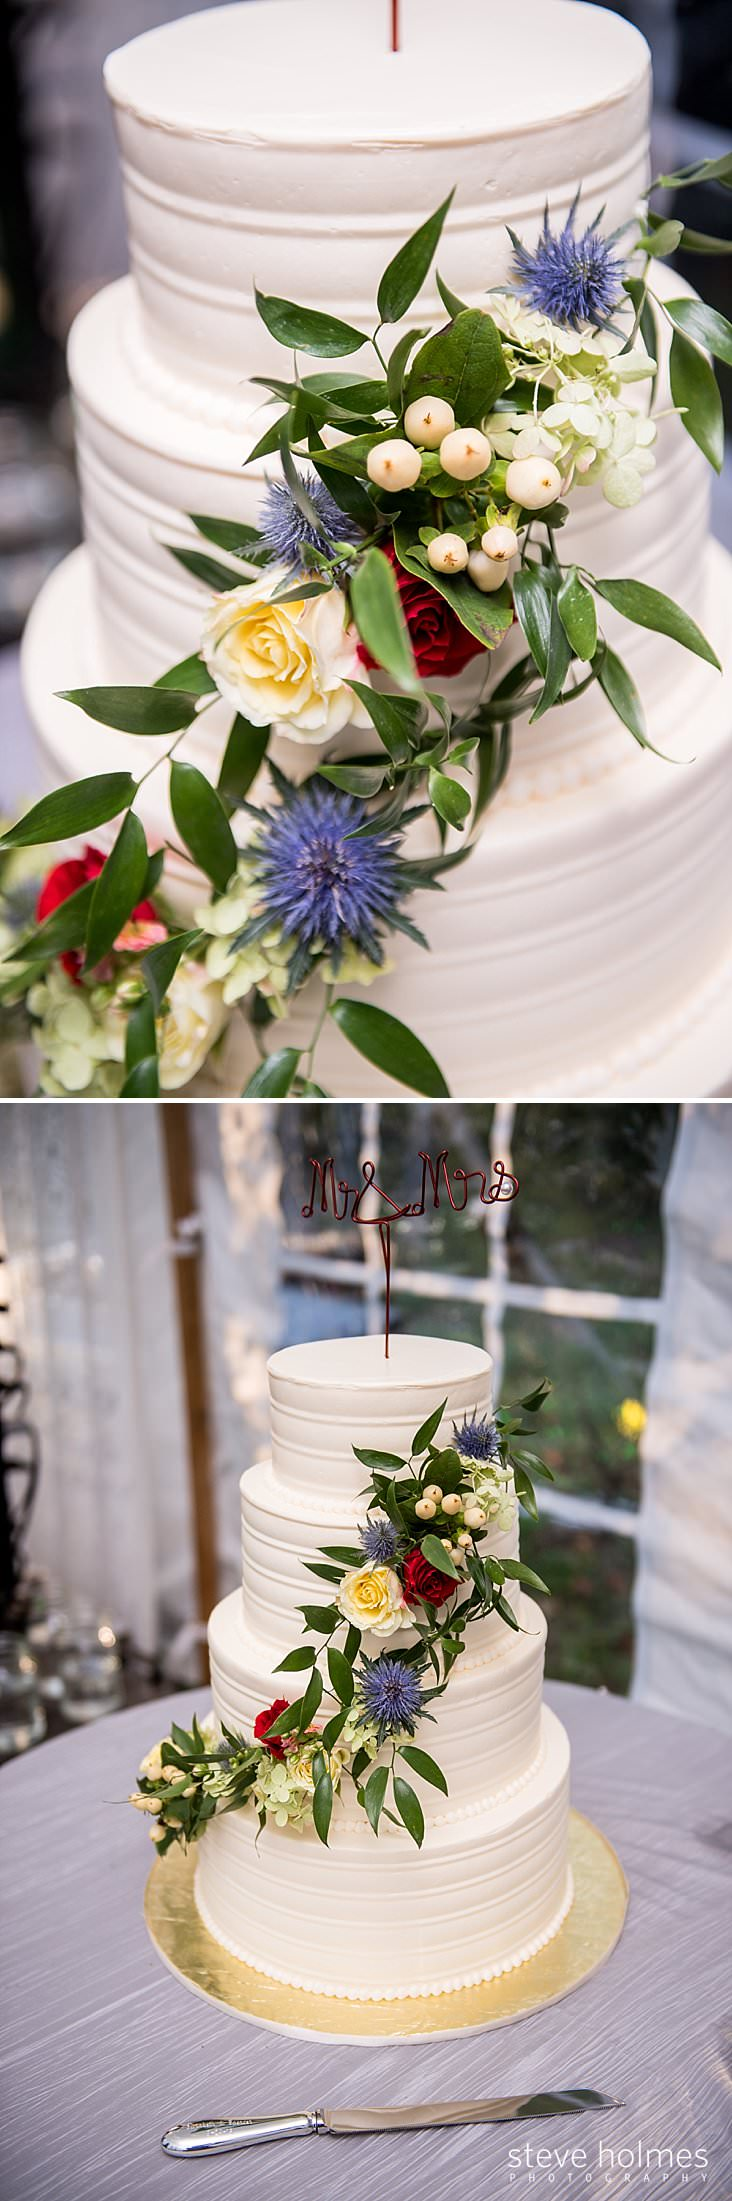 Close up of white wedding cake and draping chain flowers.jpg